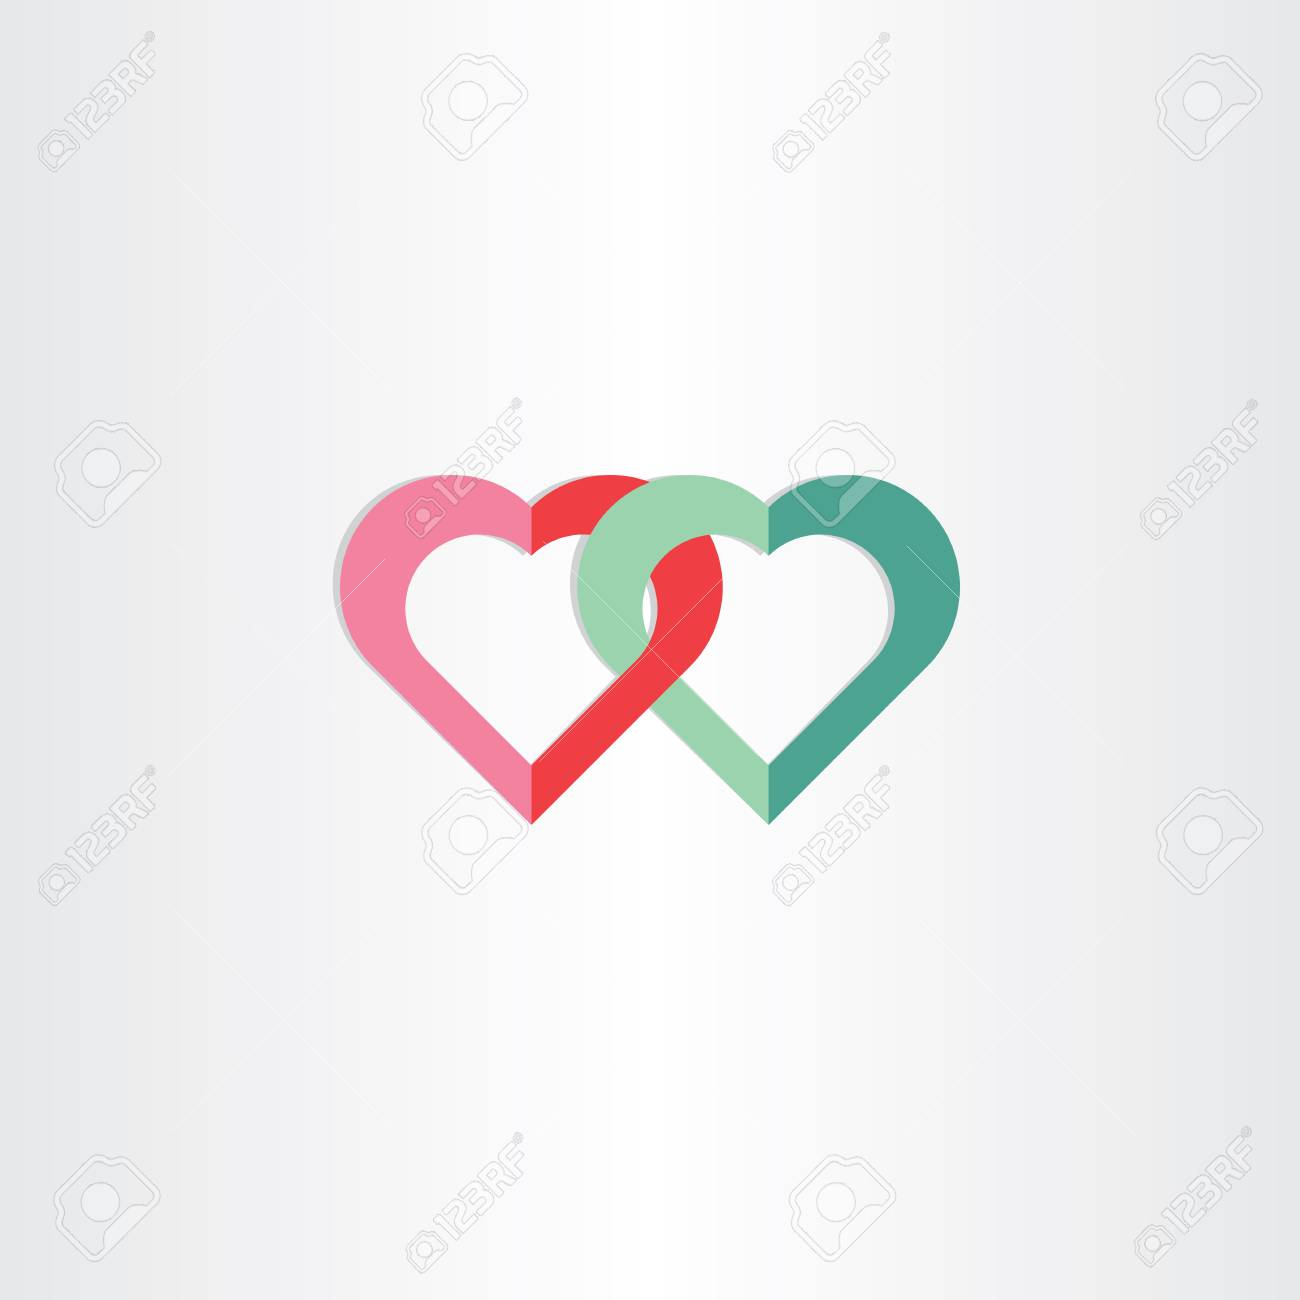 Green And Red Heart Symbol Design Stock Photo Picture And Royalty